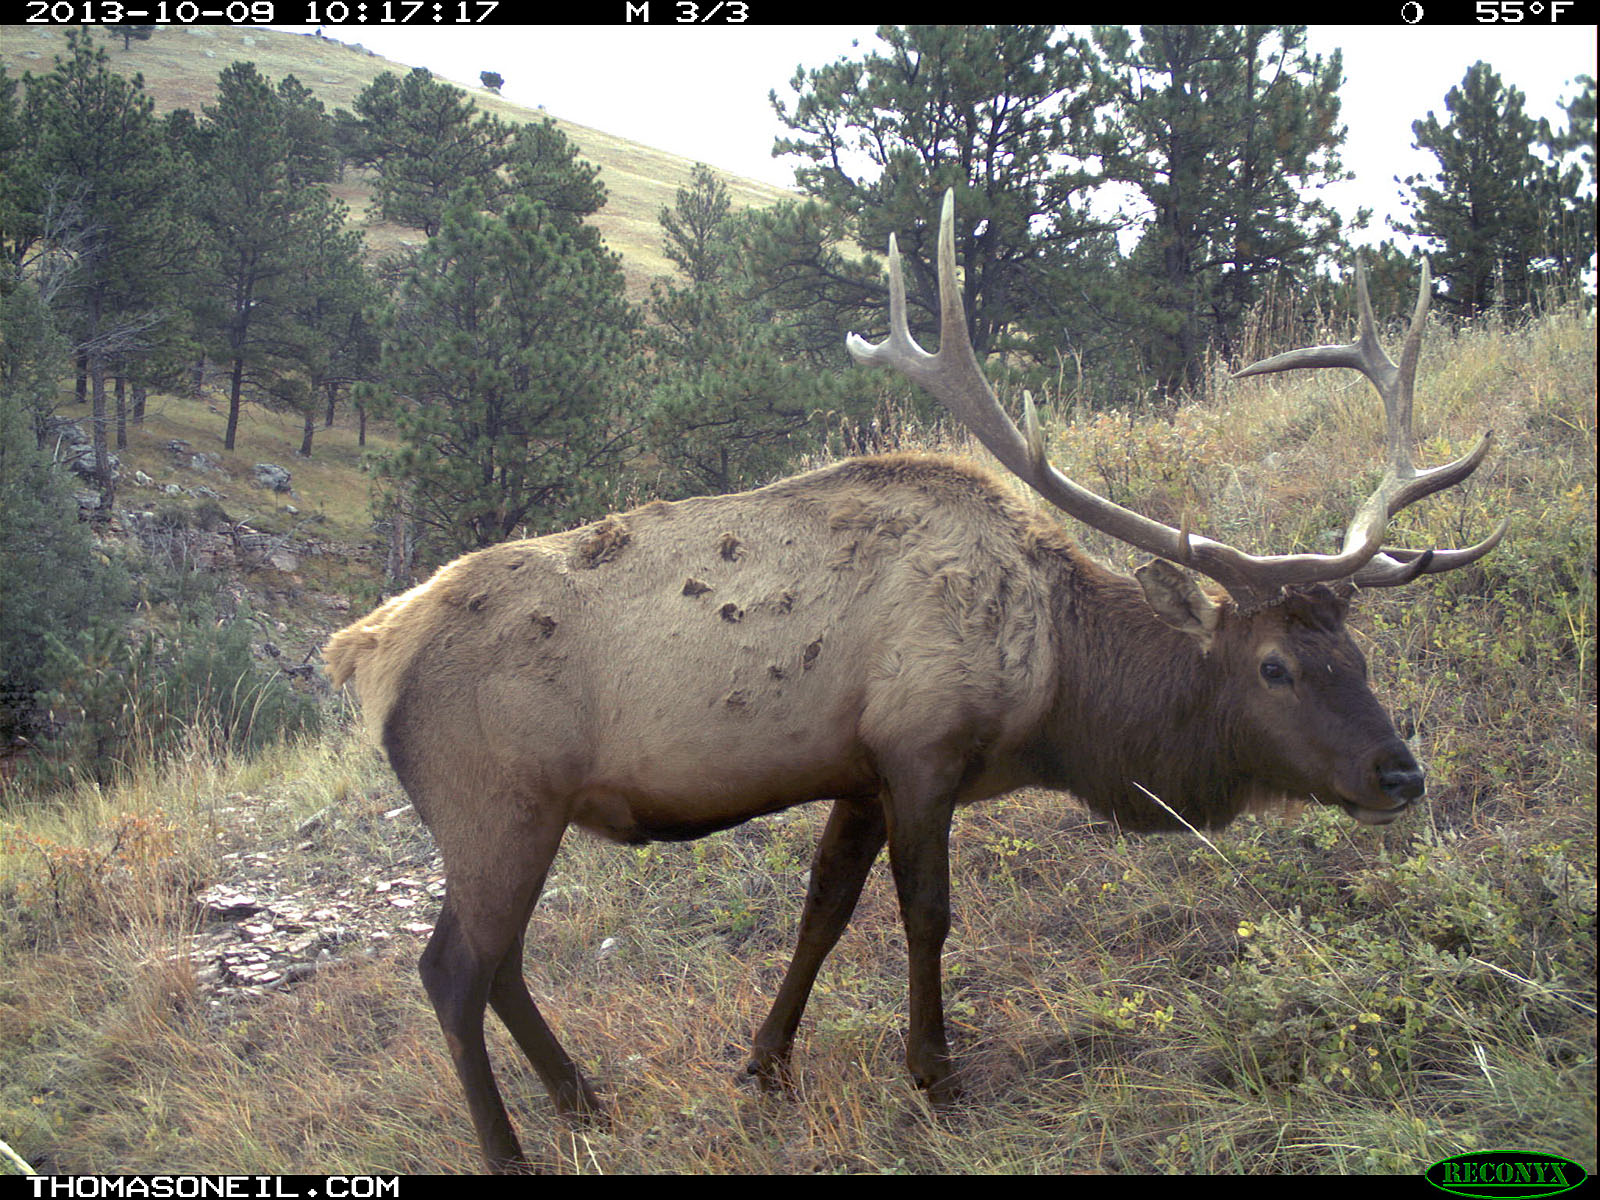 Elk on trail camera, Wind Cave National Park, South Dakota, Oct. 9, 2013.